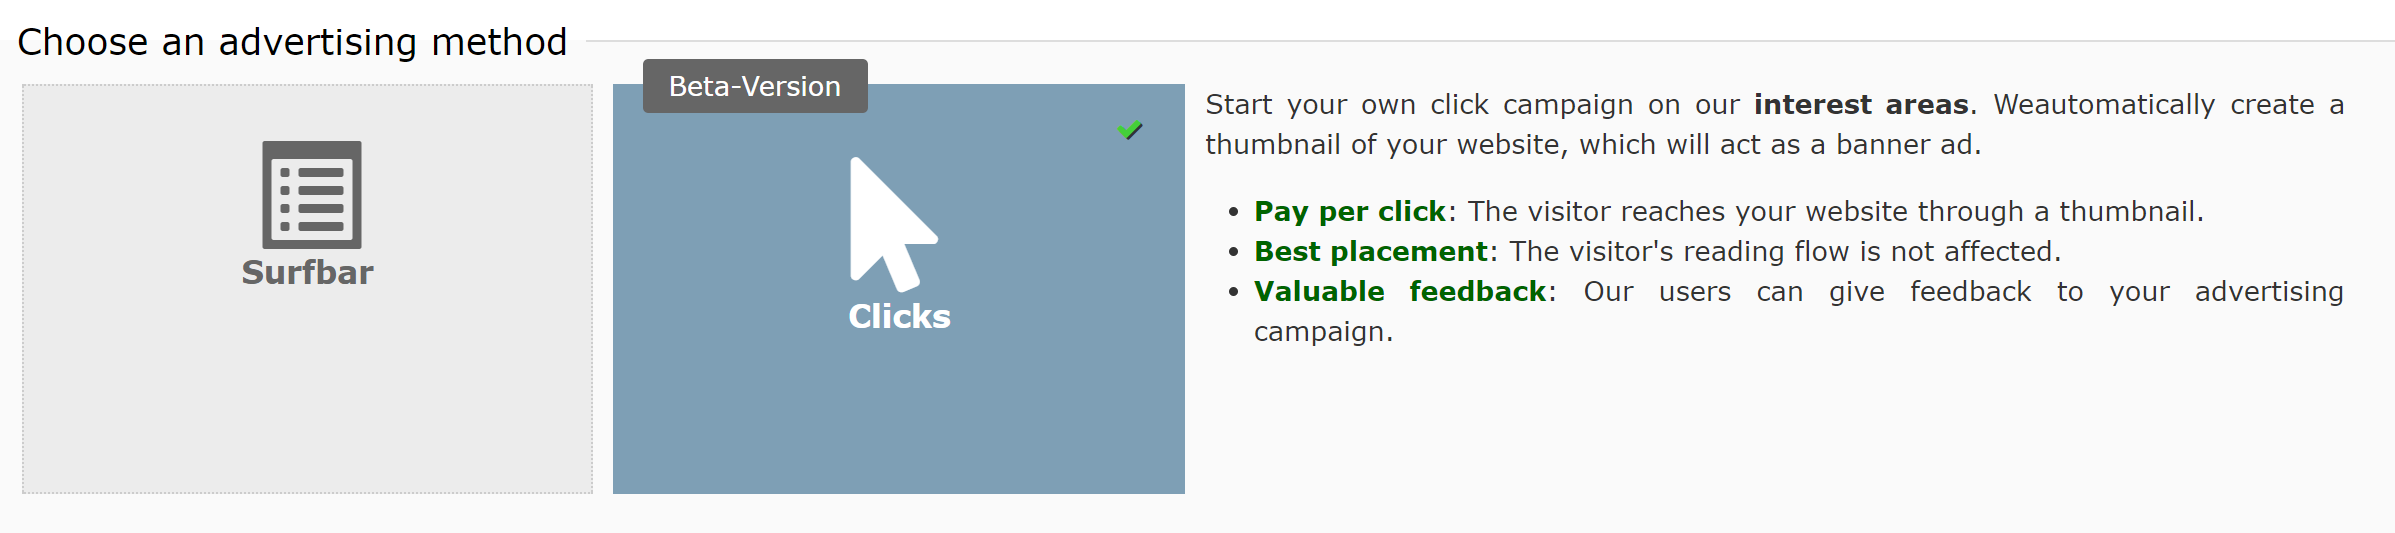 add_click_campaigns